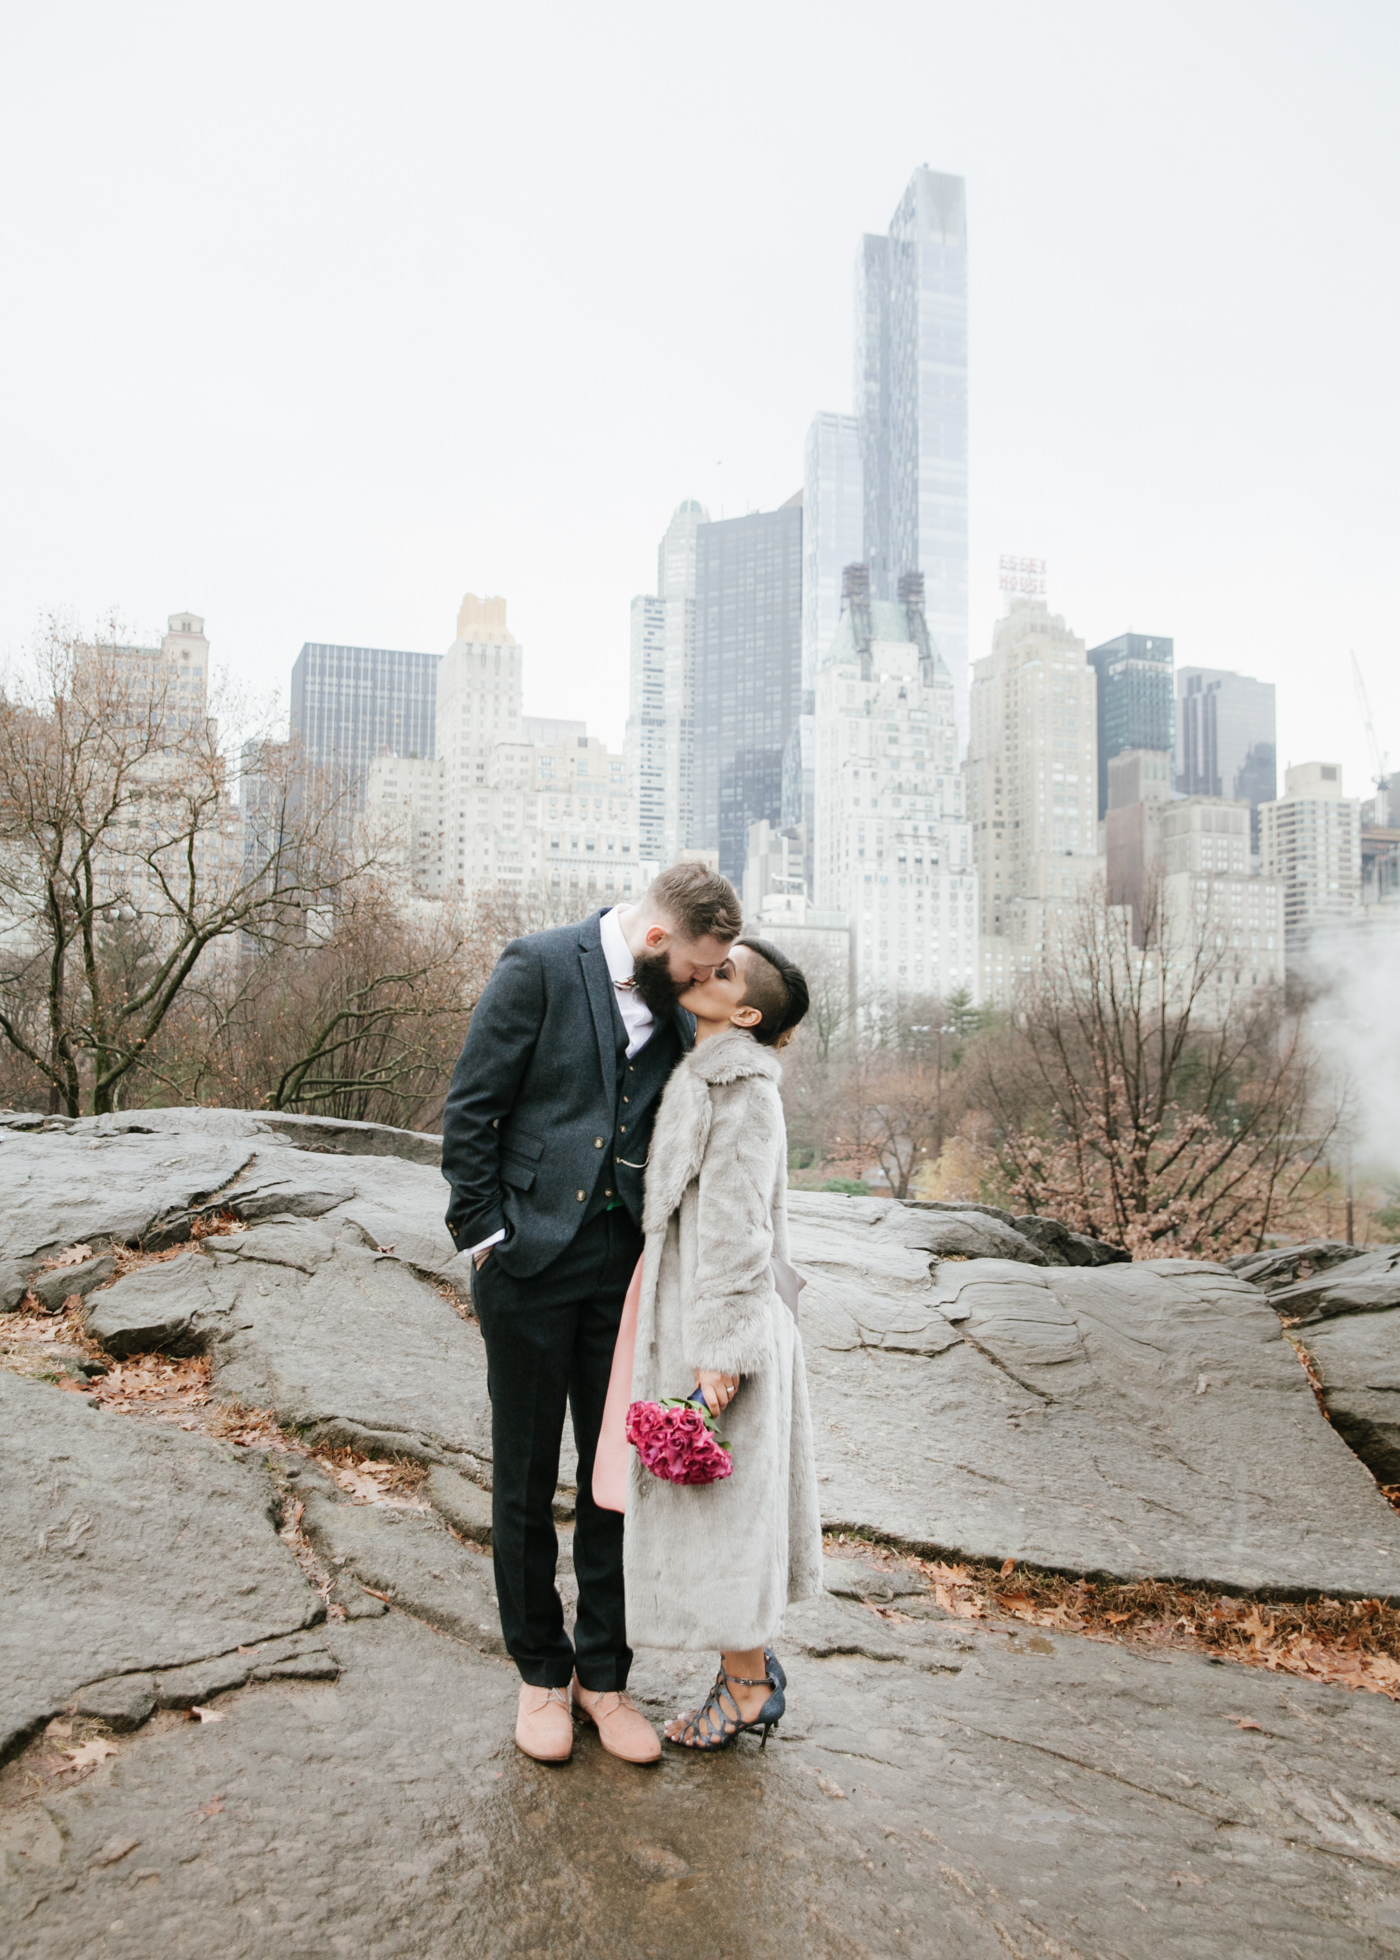 Central-park-wedding-by-Tanya-Isaeva-54.jpg